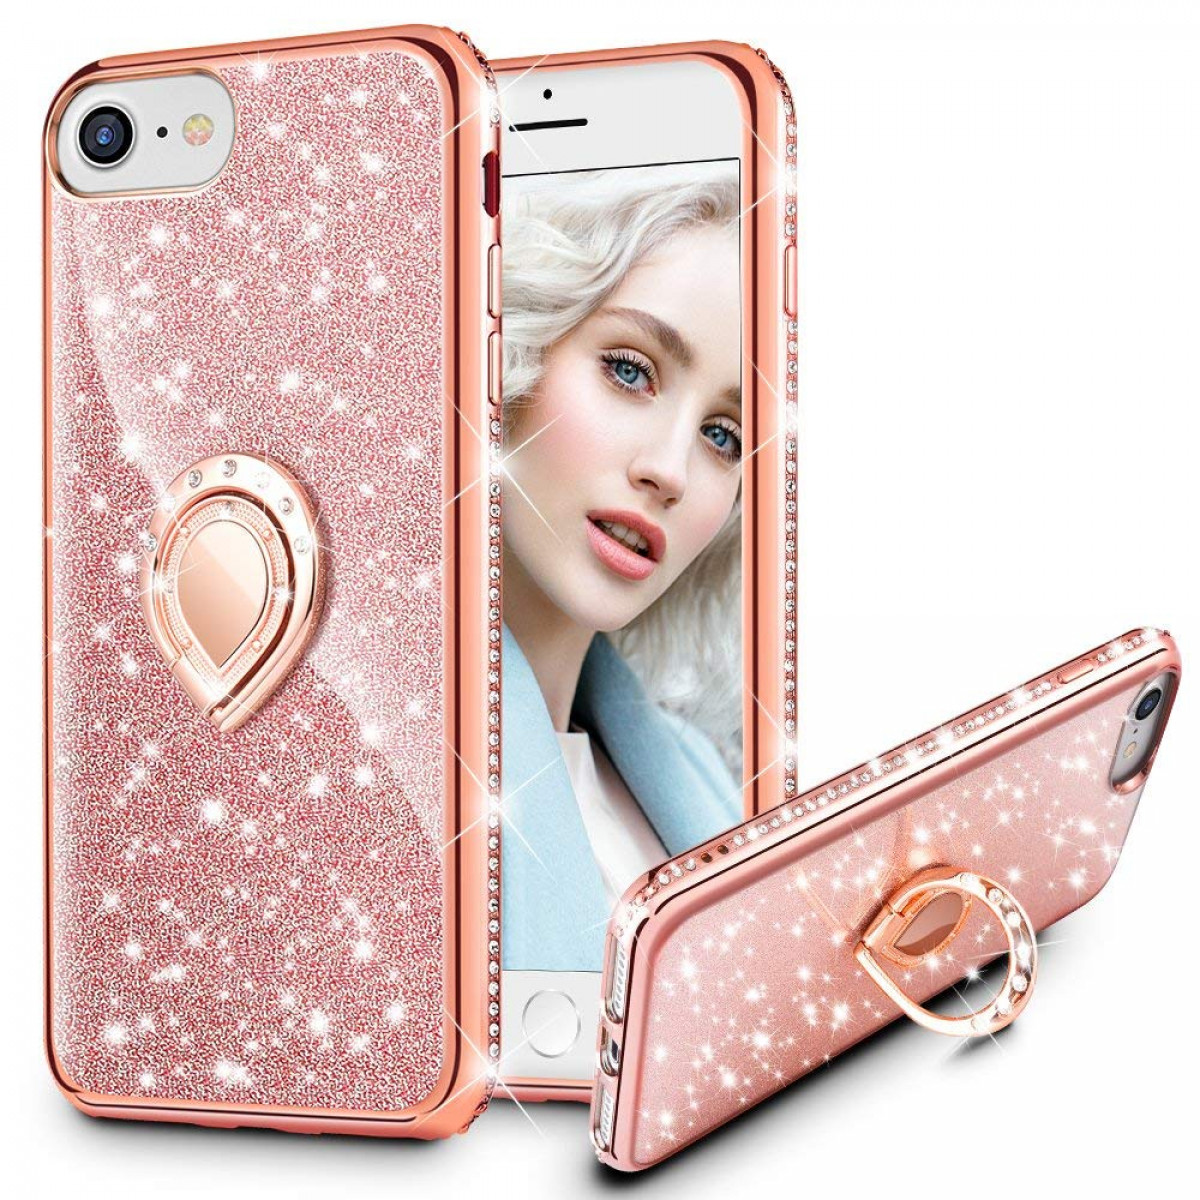 Maxdara Case For Iphone 8iphone 7 Glitter Case Shiny Bling Diamond Rhinestone Kickstand Ring Grip Holder Ultra Thin Pretty Girls Women Case Cover For